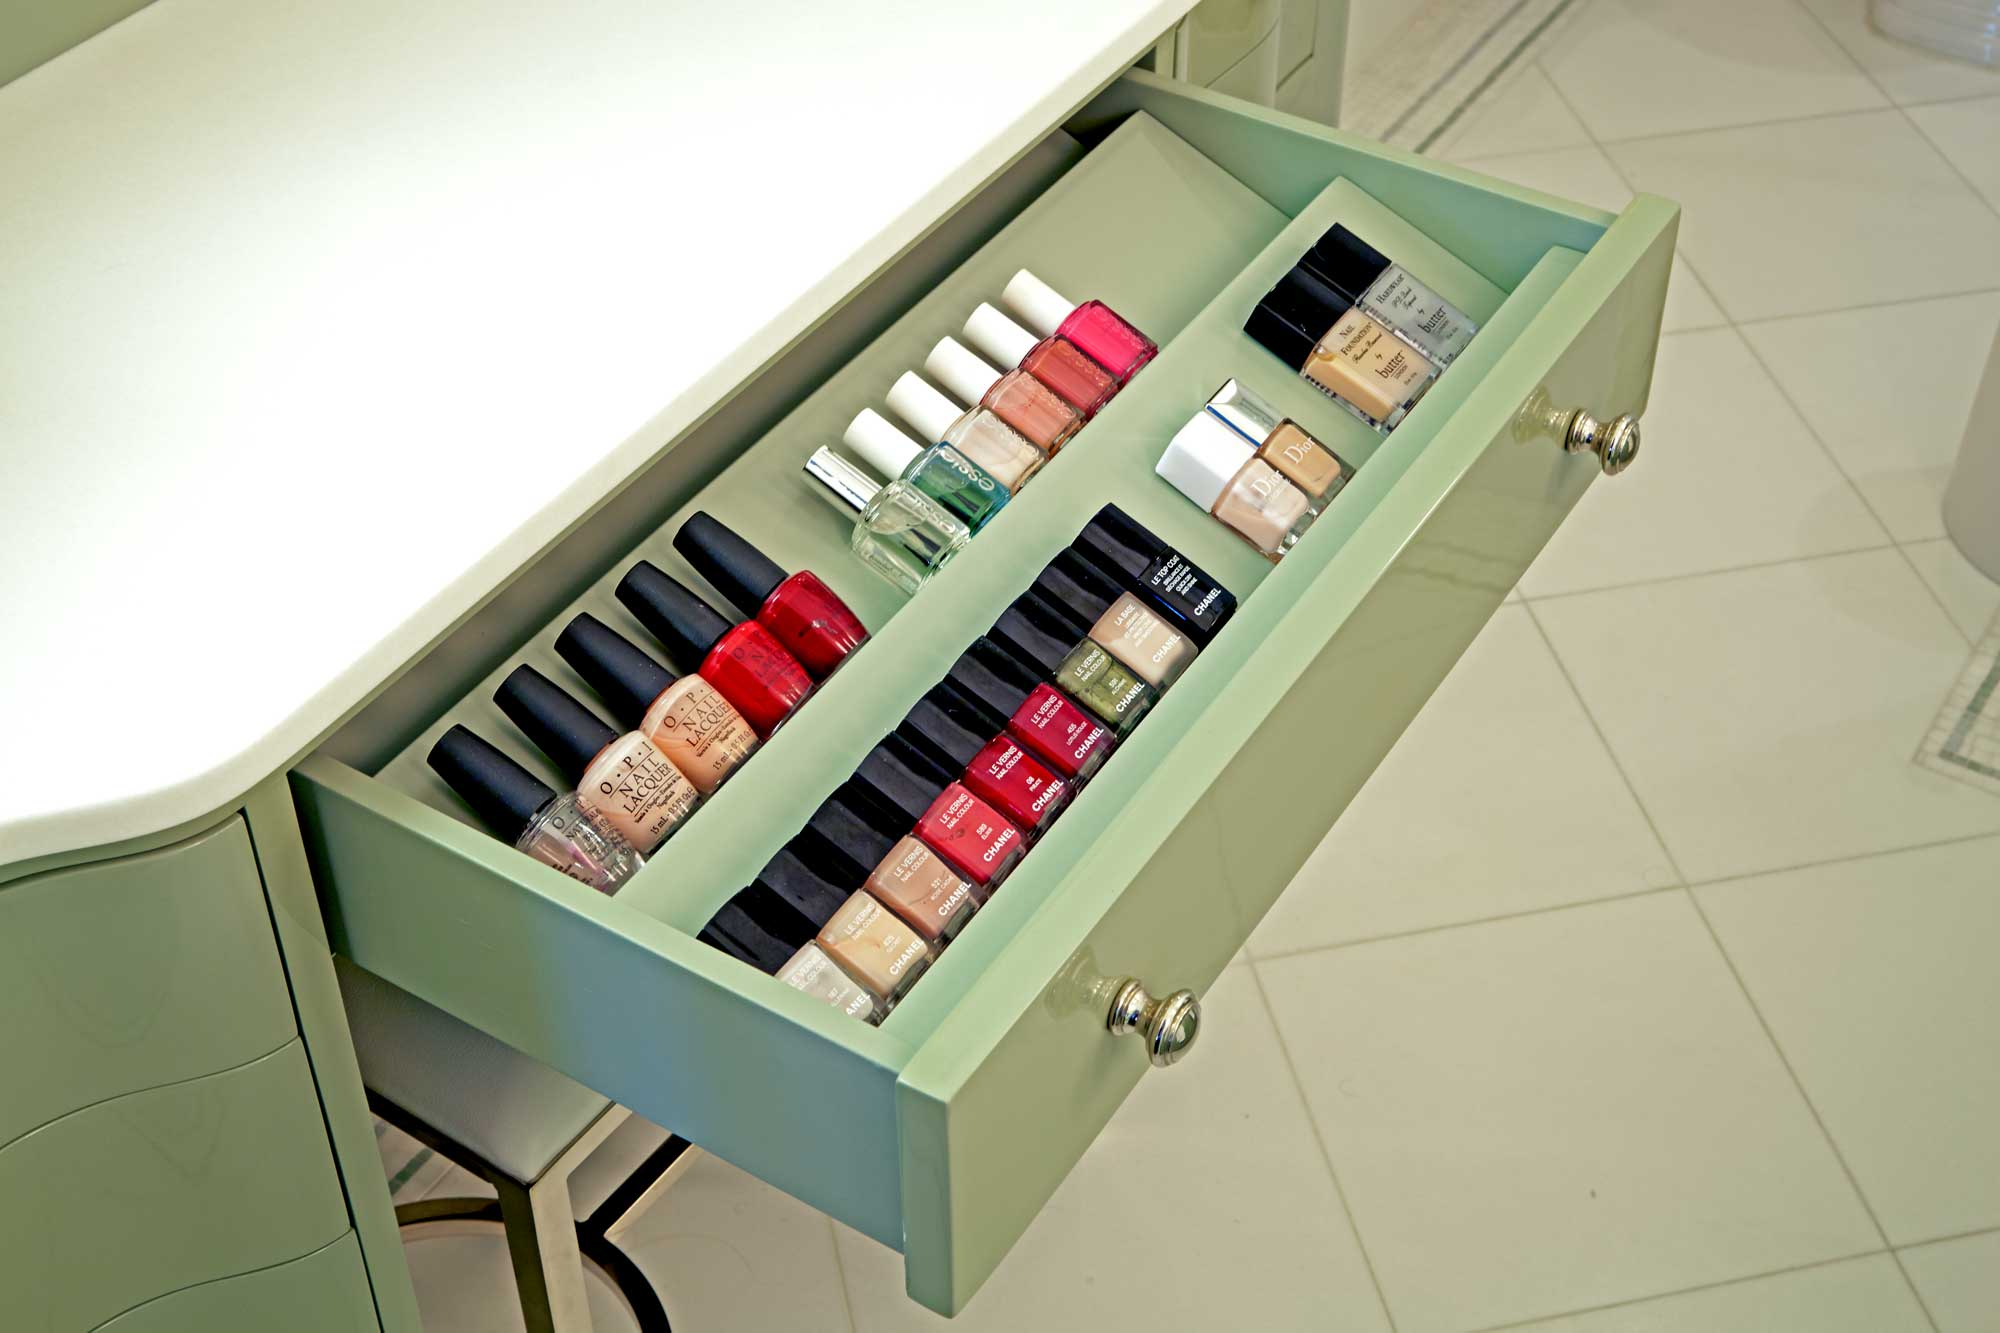 brooke moorhead design 5th avenue classic nail polish drawer